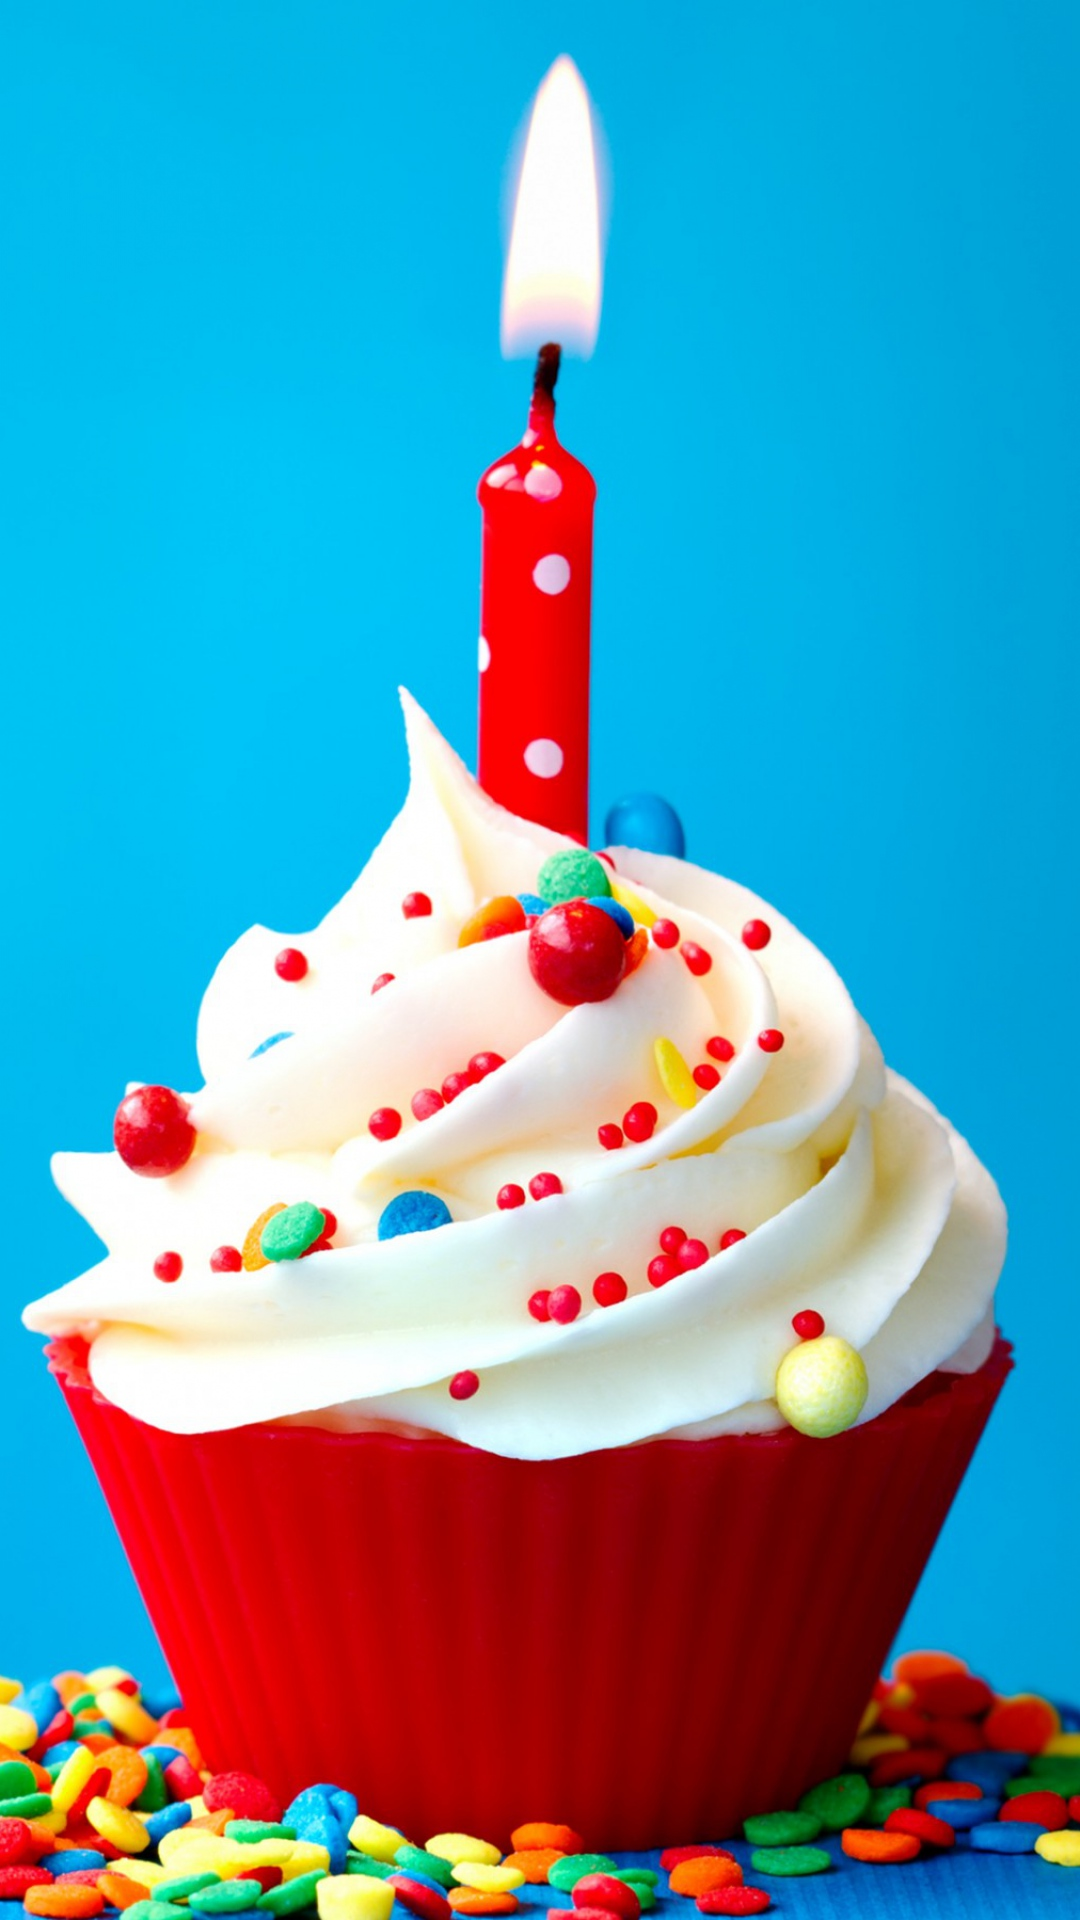 birthday cake best htc one wallpapers free and easy to